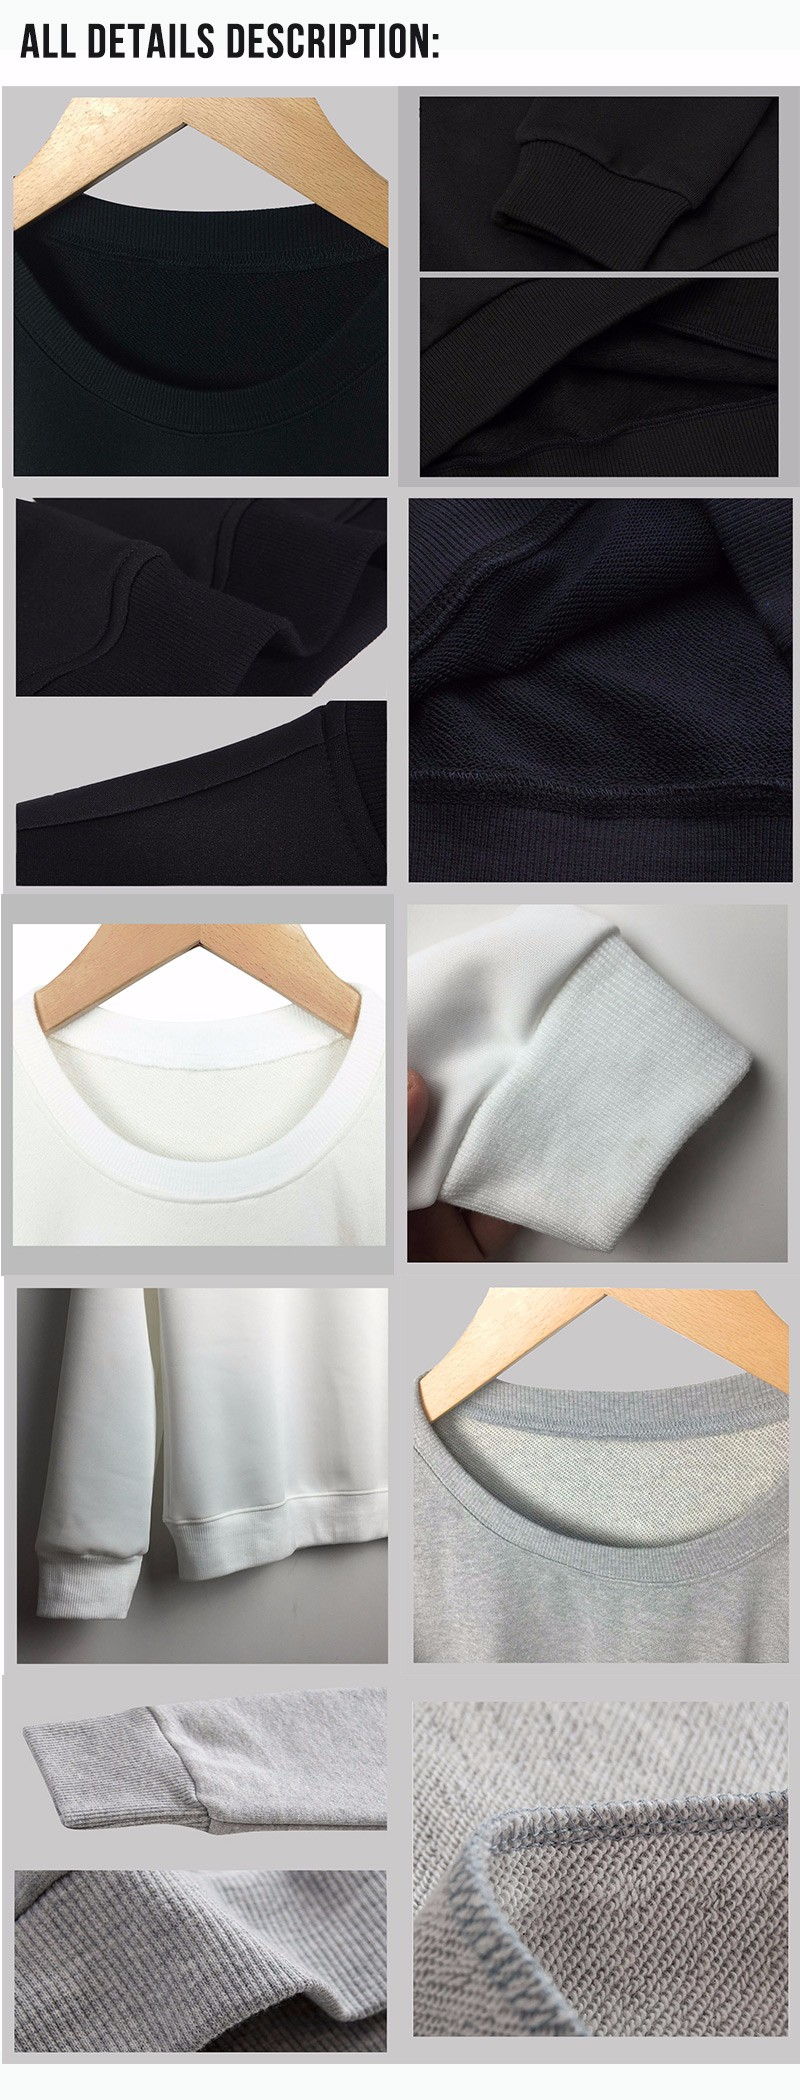 ALL-DETAILS-SLEEVE